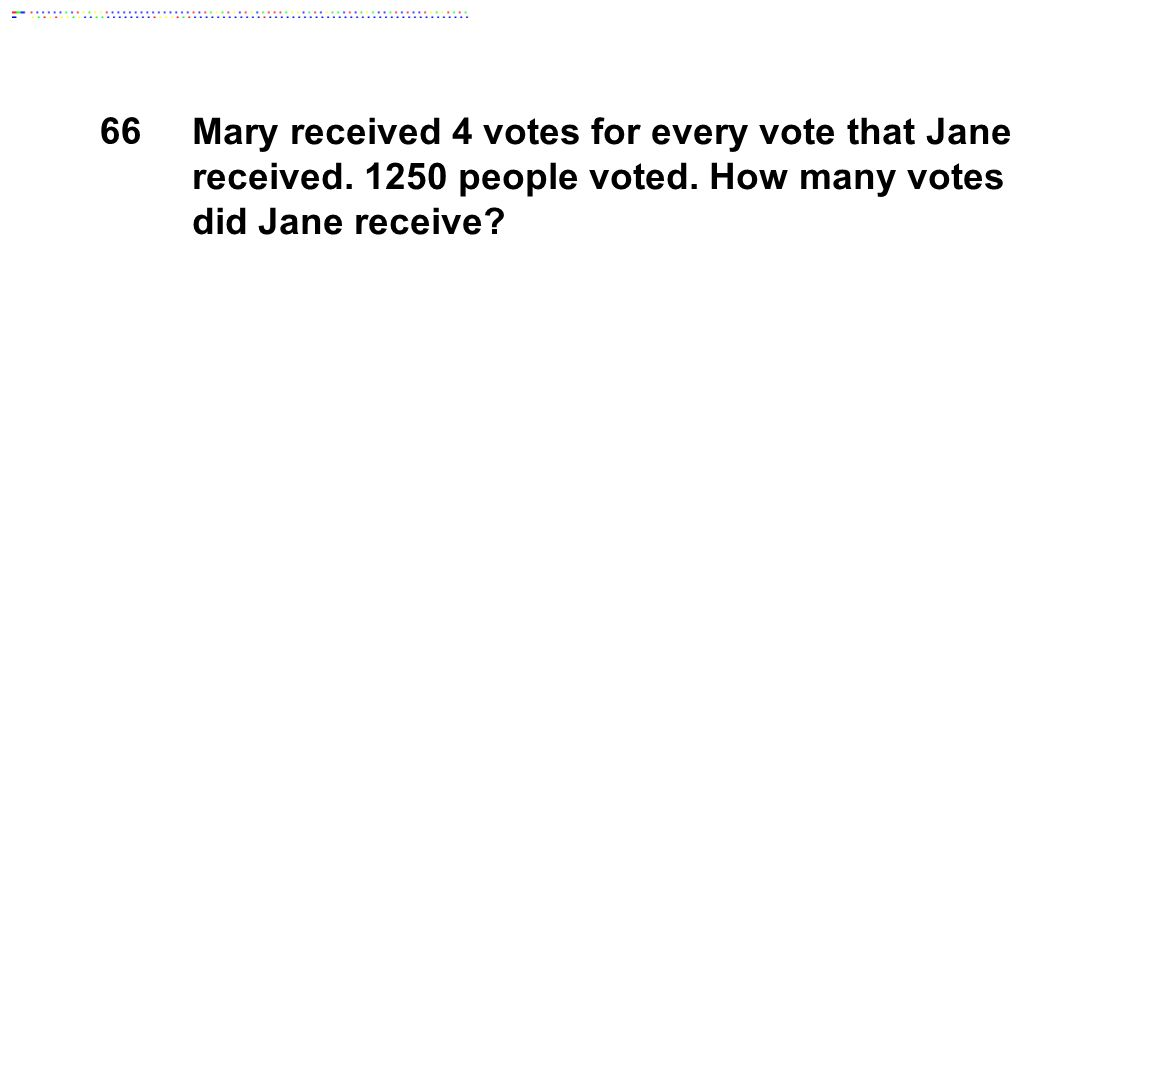 66 Mary received 4 votes for every vote that Jane received. 1250 people voted. How many votes did Jane receive